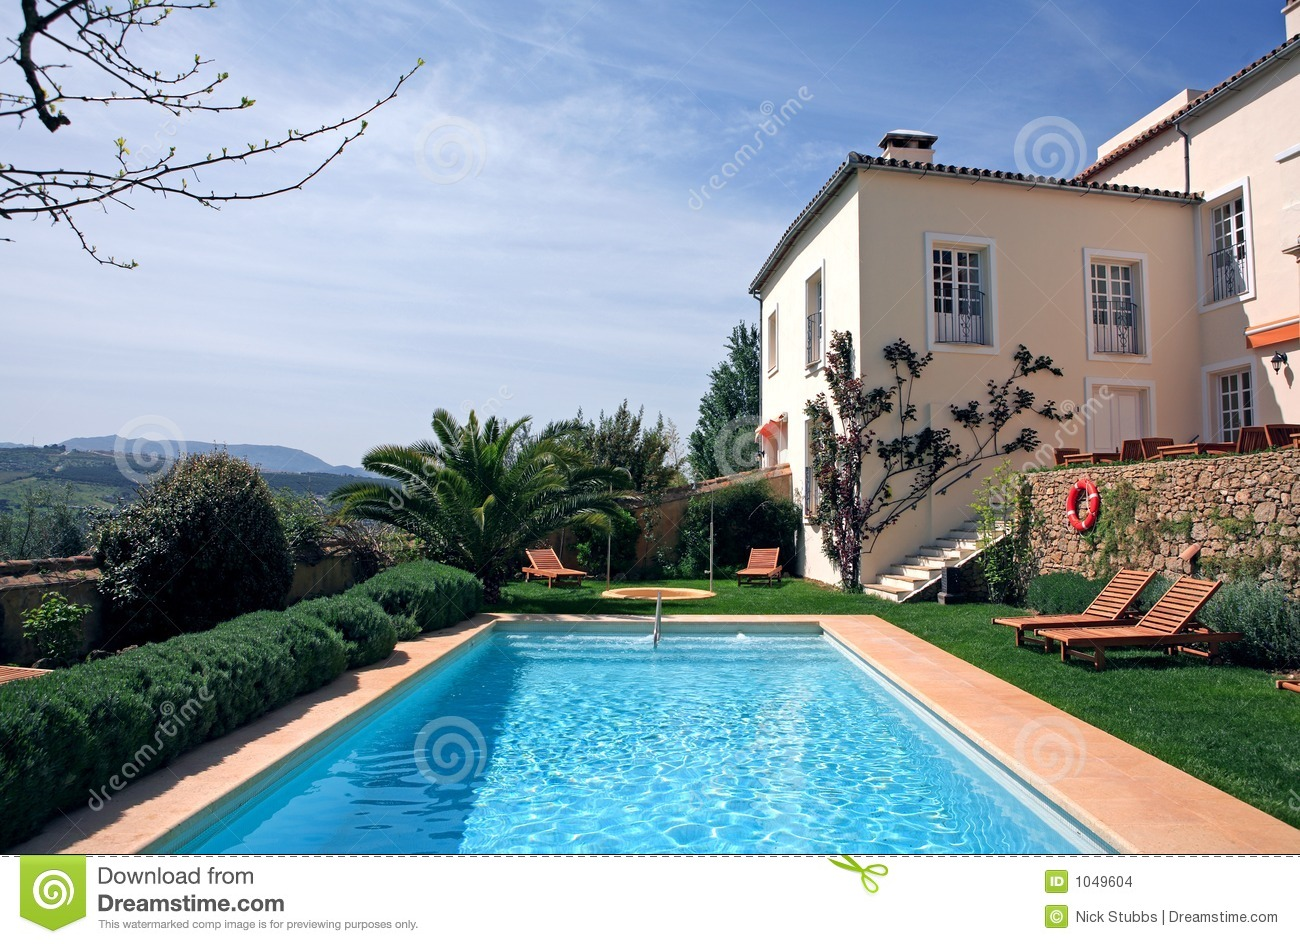 Luxury Rustic Hotel And Swimming Pool Stock Photo Image 1049604